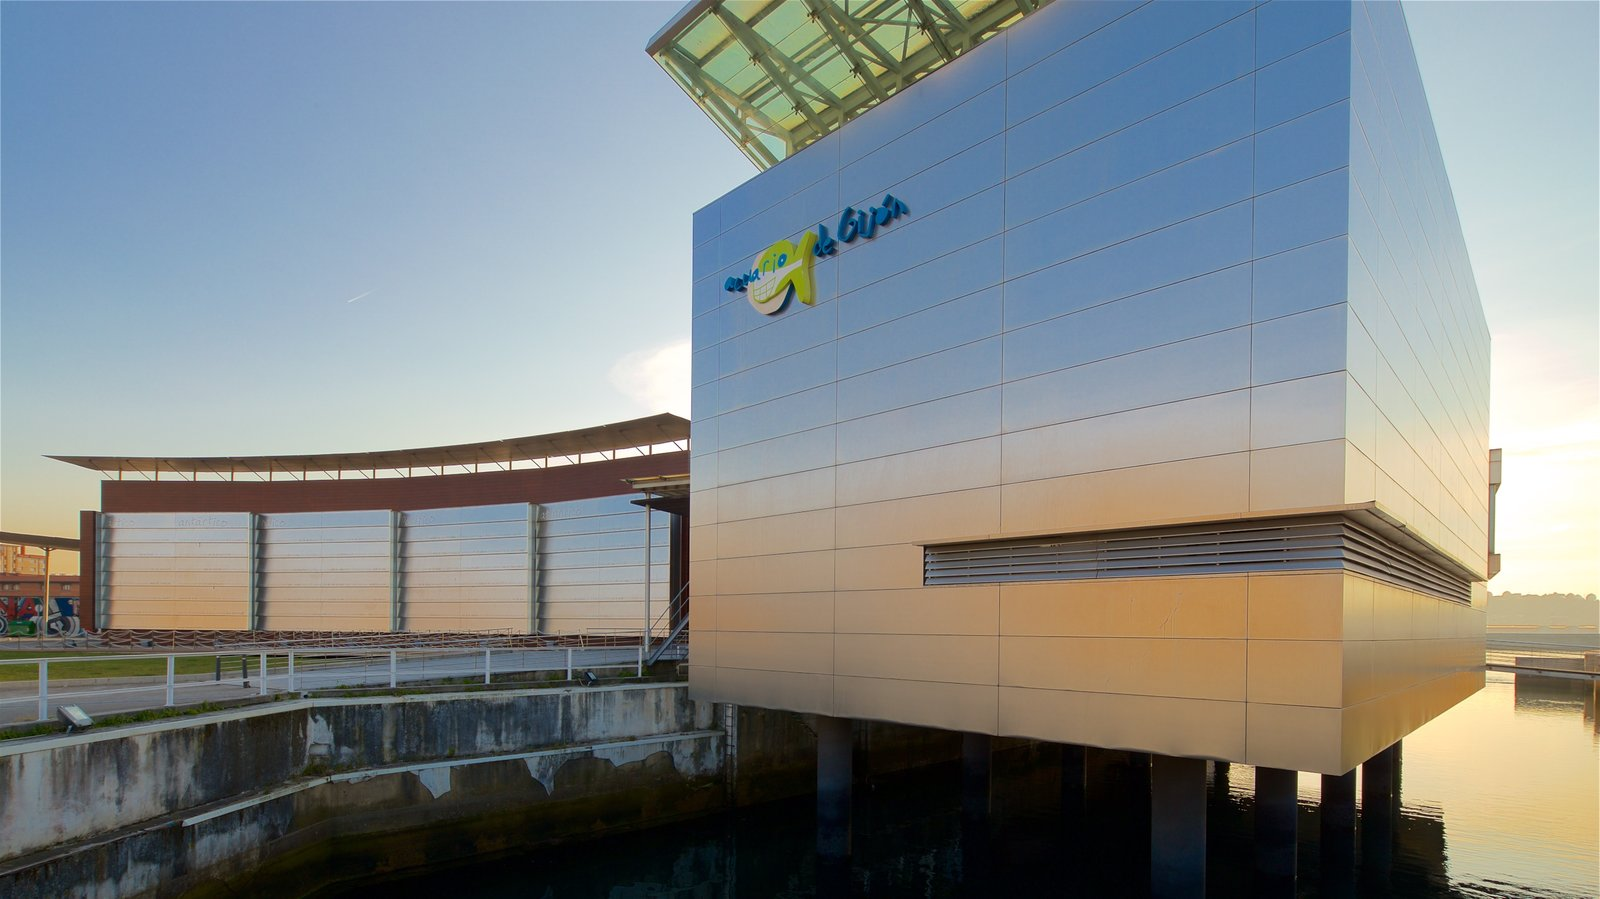 Aquarium of Gijon which includes a sunset, signage and modern architecture